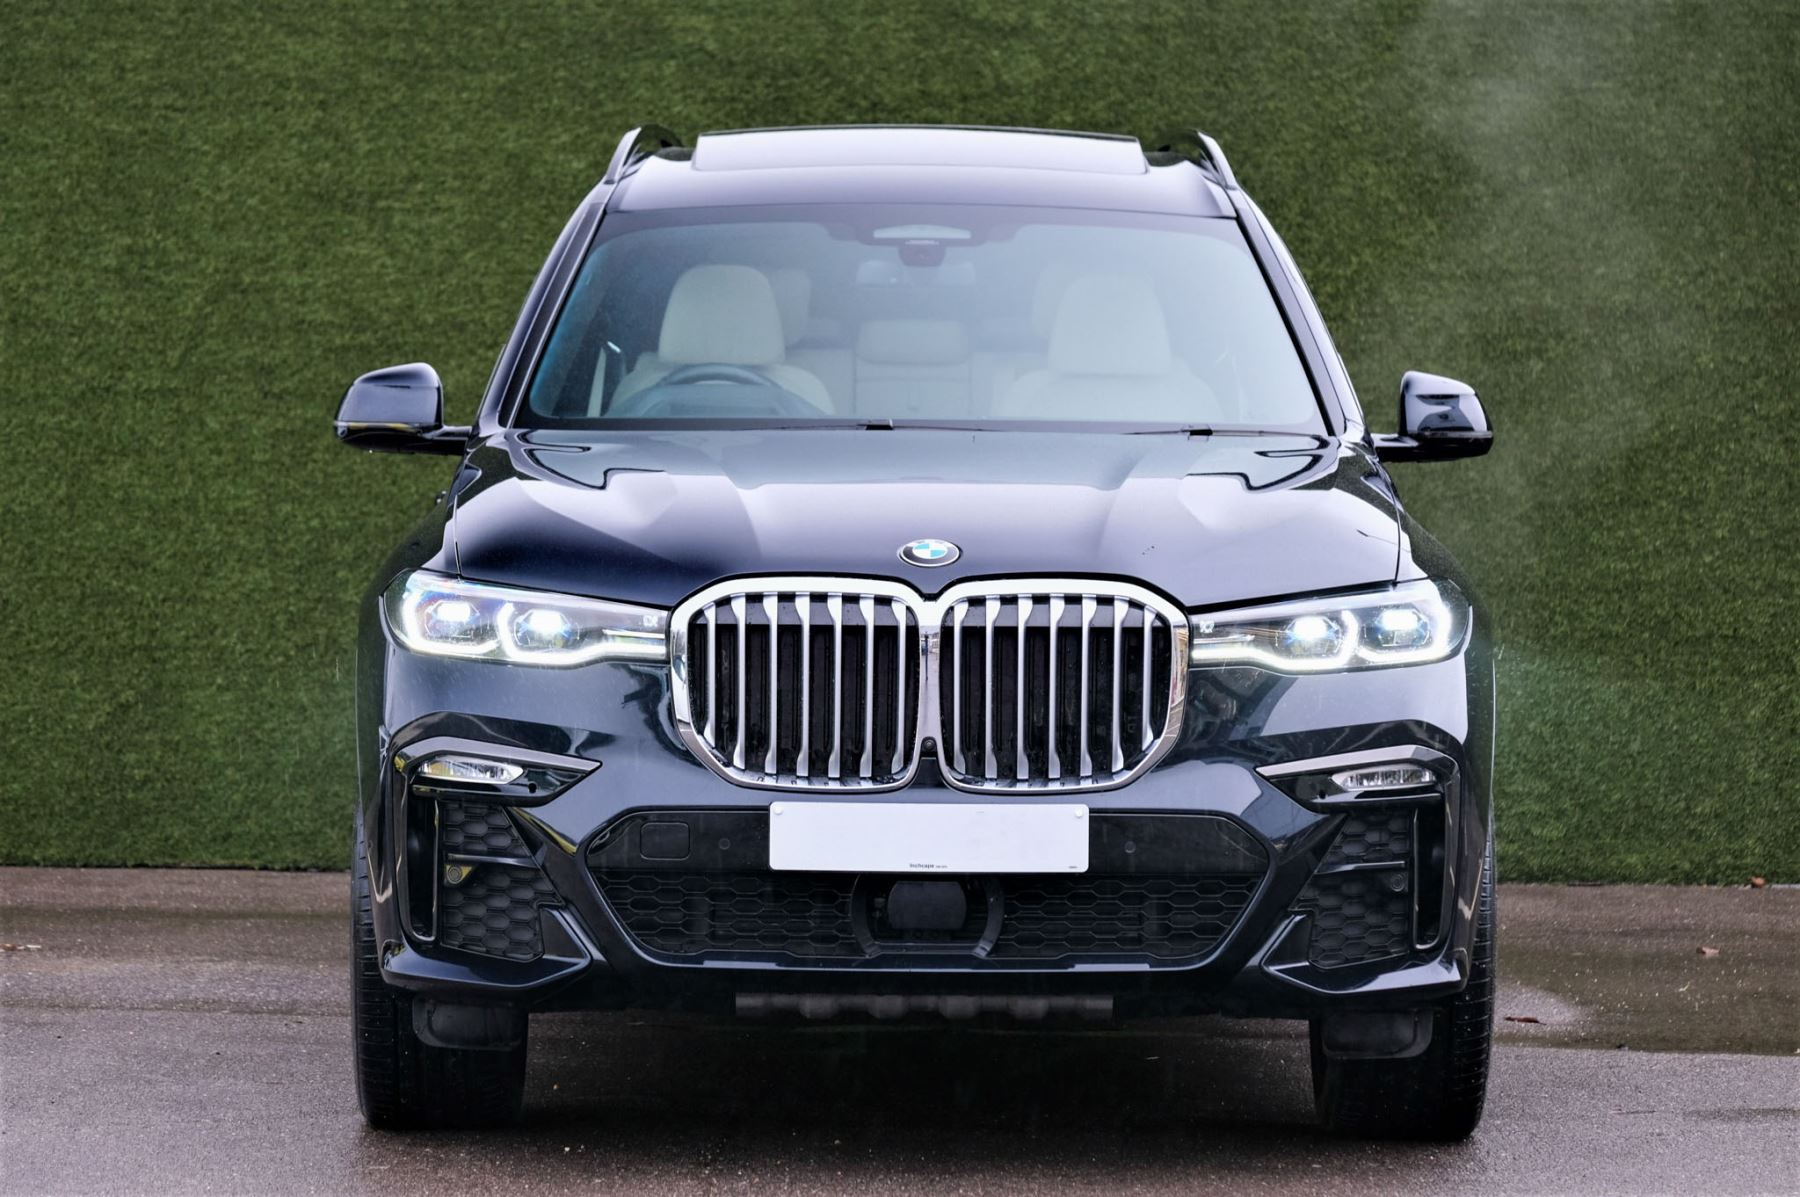 BMW X7 0.0 xDrive40i M Sport 5dr Step - Head up Display - M S